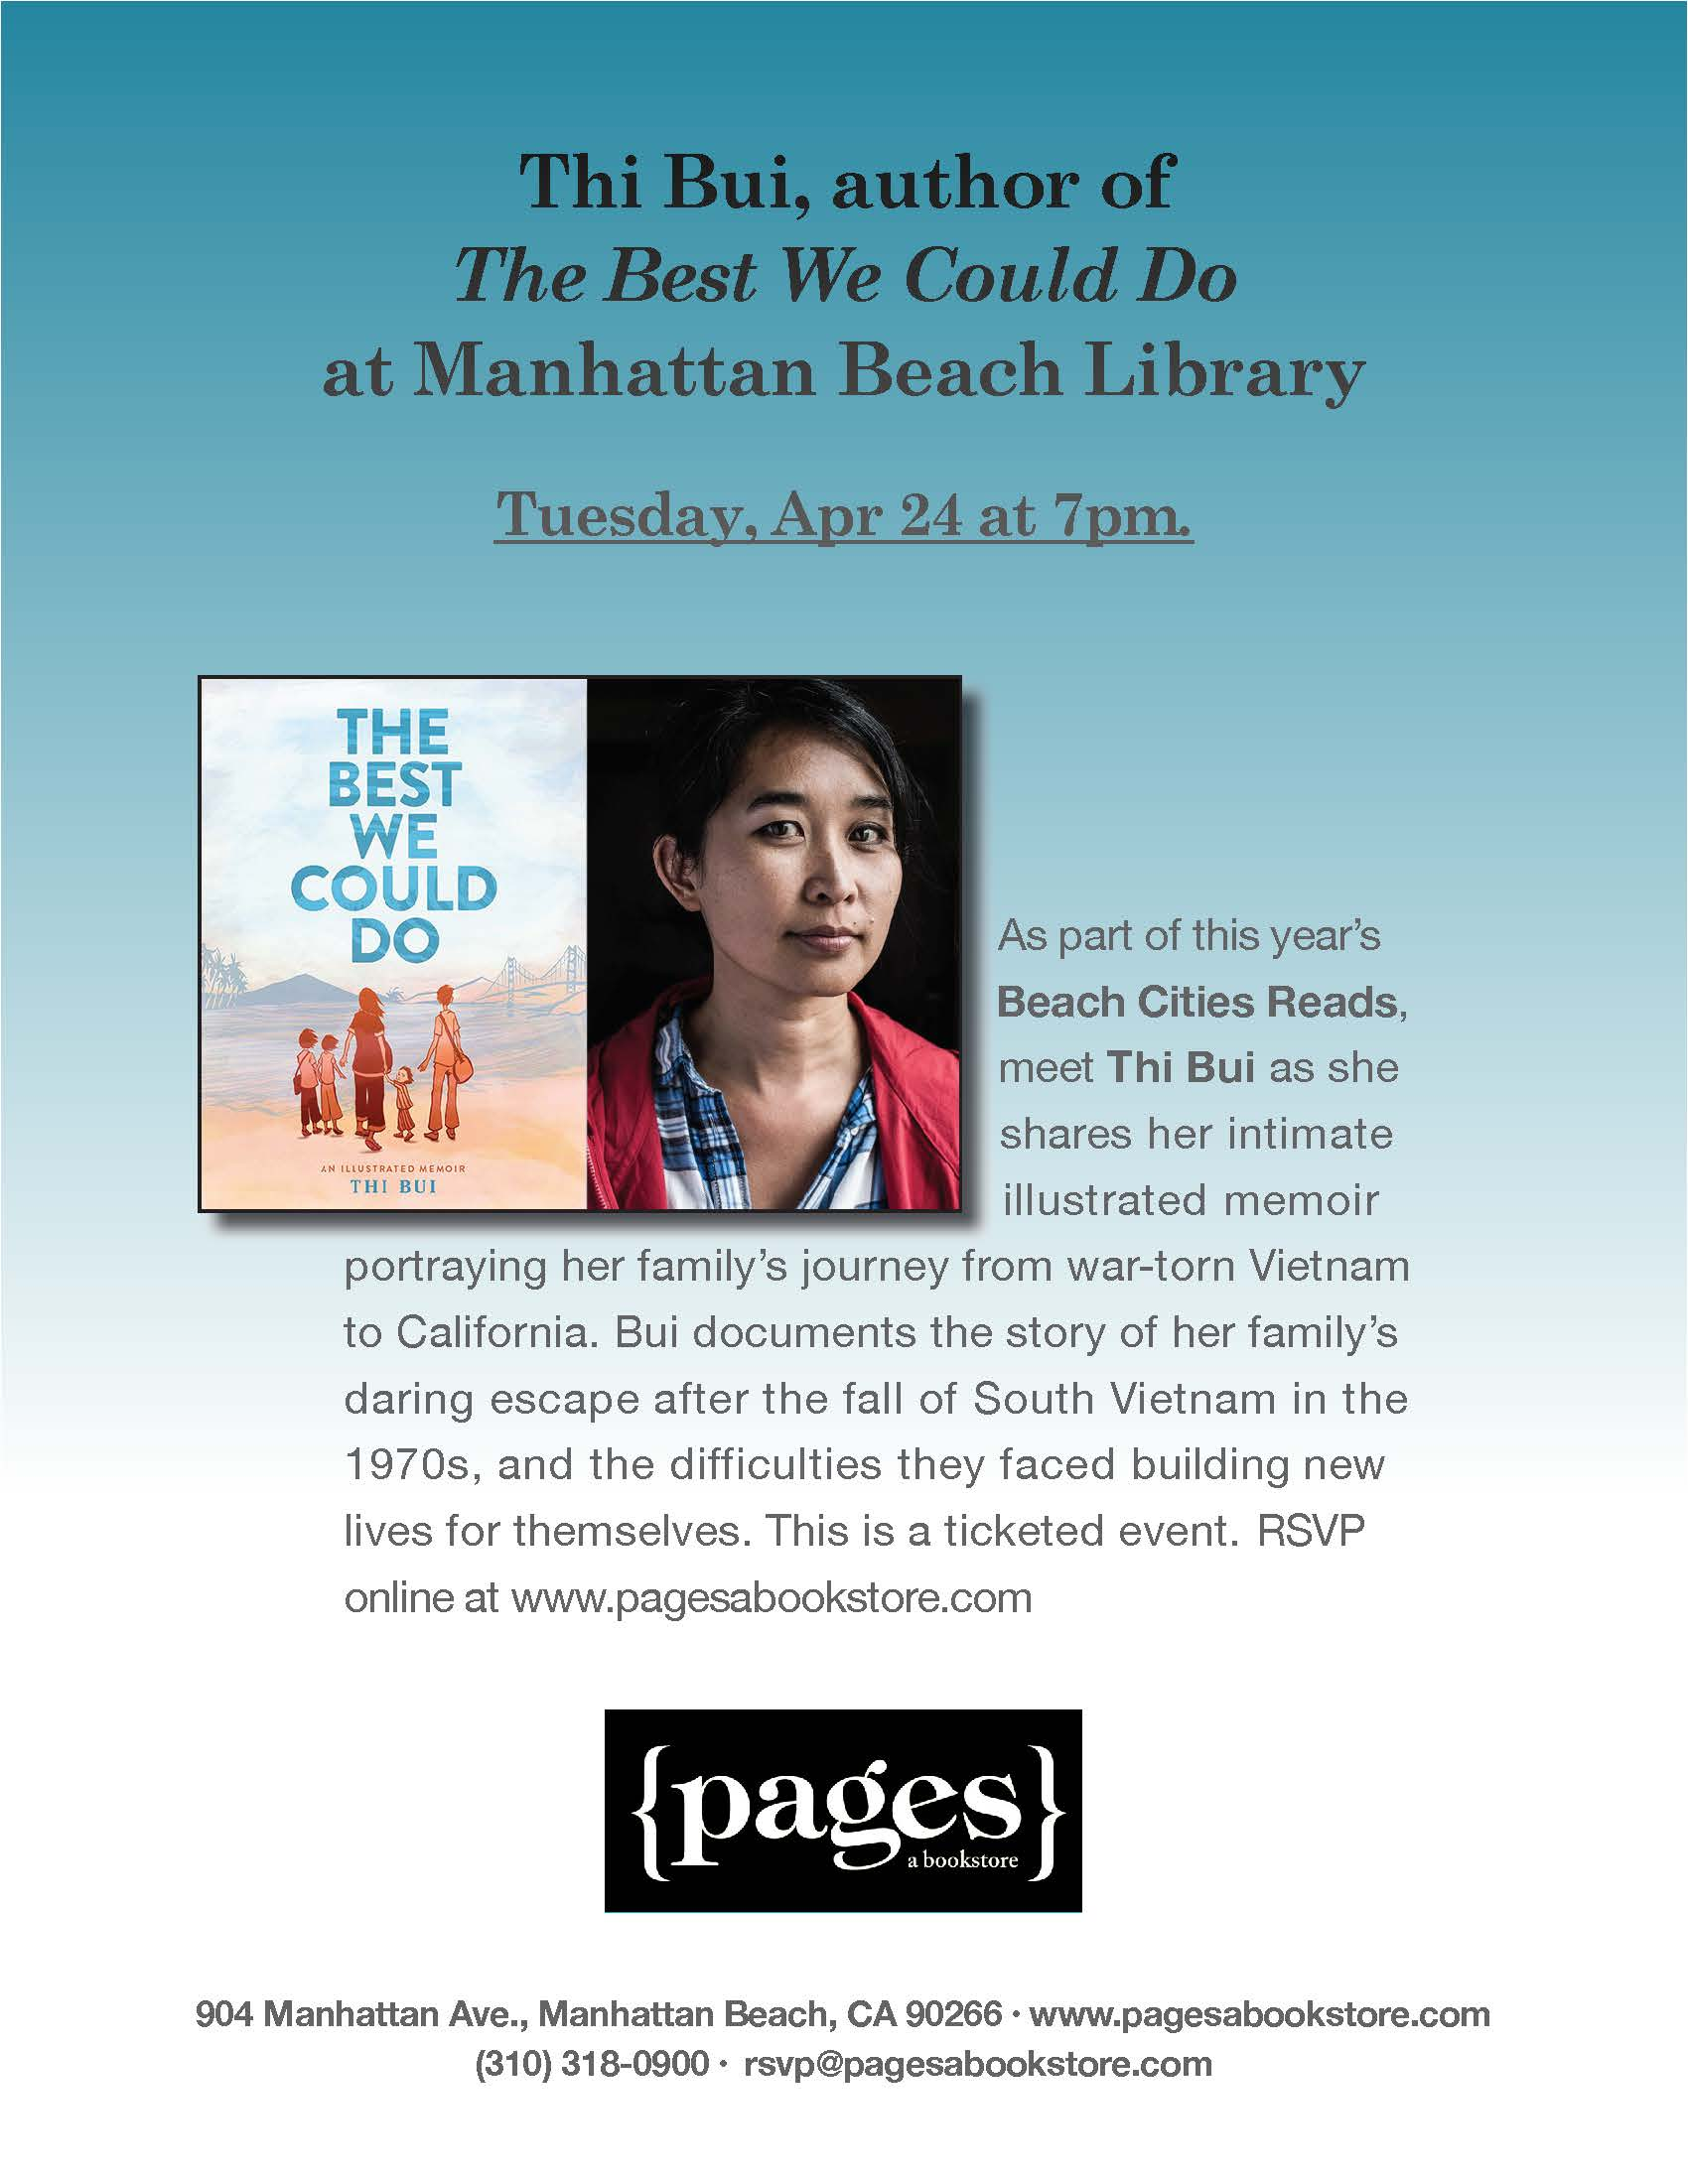 Thi Bui, author of The Best We Could Do, at Manhattan Beach Library. As part of this year's    Beach Cities Reads,    meet Thi Bui as she    shares her intimateillustrated memoirportraying her family's journey from war-torn Vietnam to California. Bui documents the story of her family's daring escape after the fall of South Vietnam in the 1970s, and the difficulties they faced building new lives for themselves. This is a ticketed event. RSVP online at www.pagesabookstore.com  -